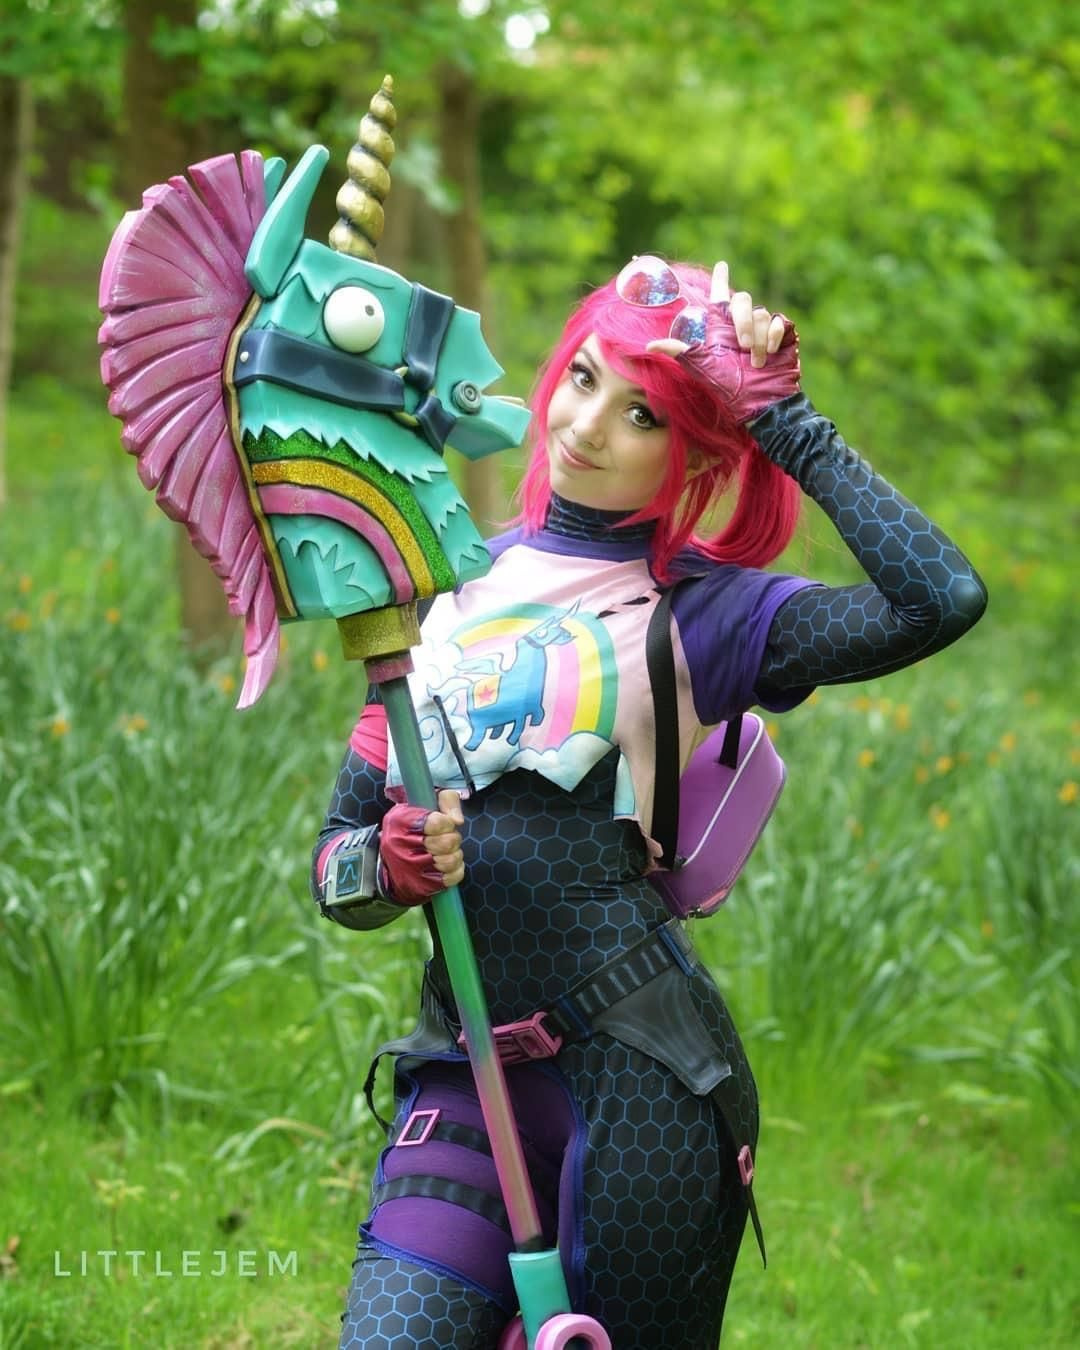 Fortnite Brite Bomber Cosplay By Little Jem Fortnite Pinterest